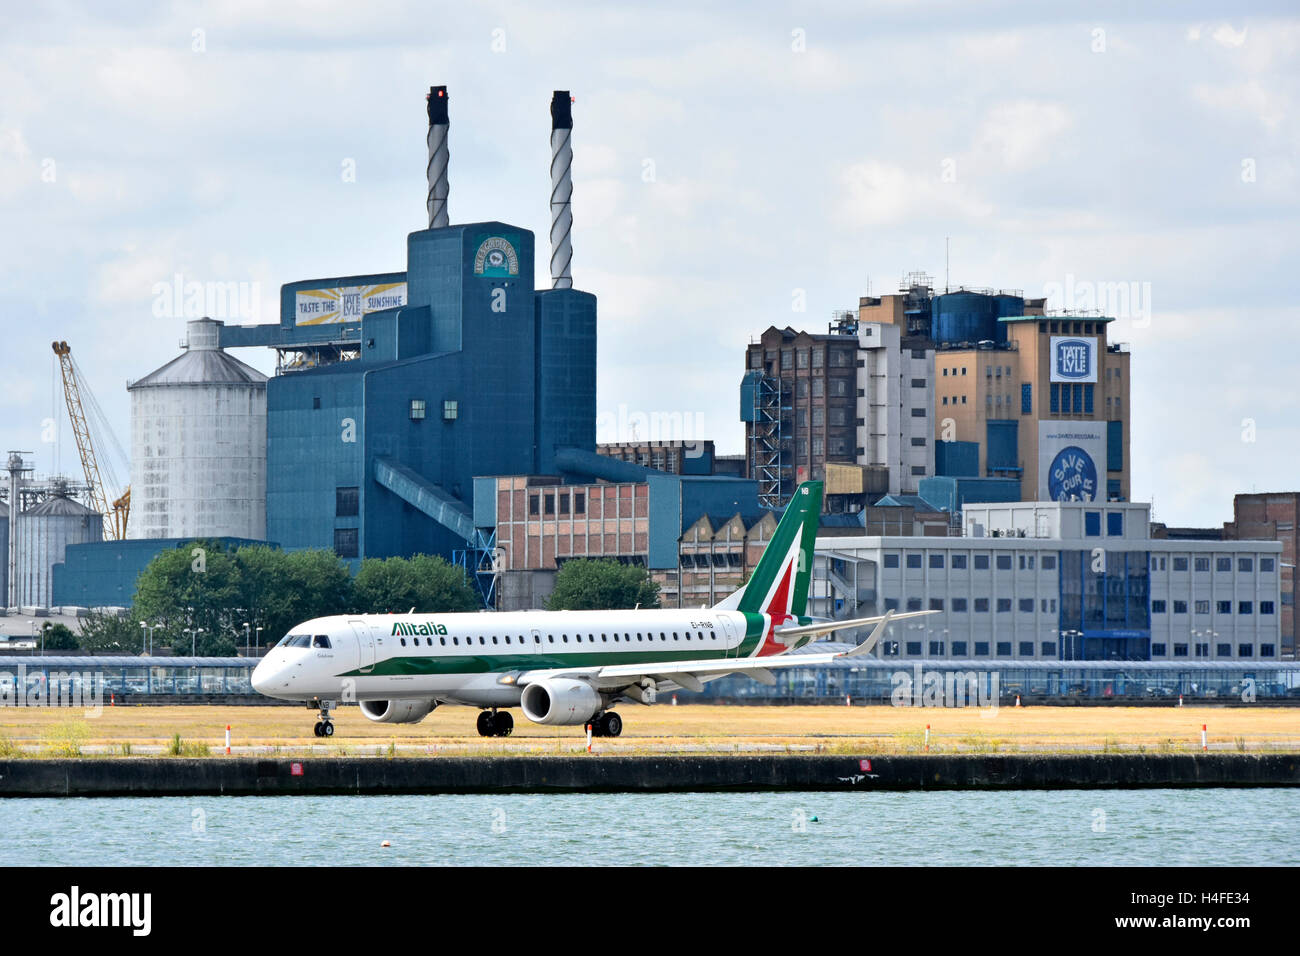 Airplane Alitalia Embraer taxying before take off London City Airport Tate & Lyle Silvertown sugar refinery - Stock Image